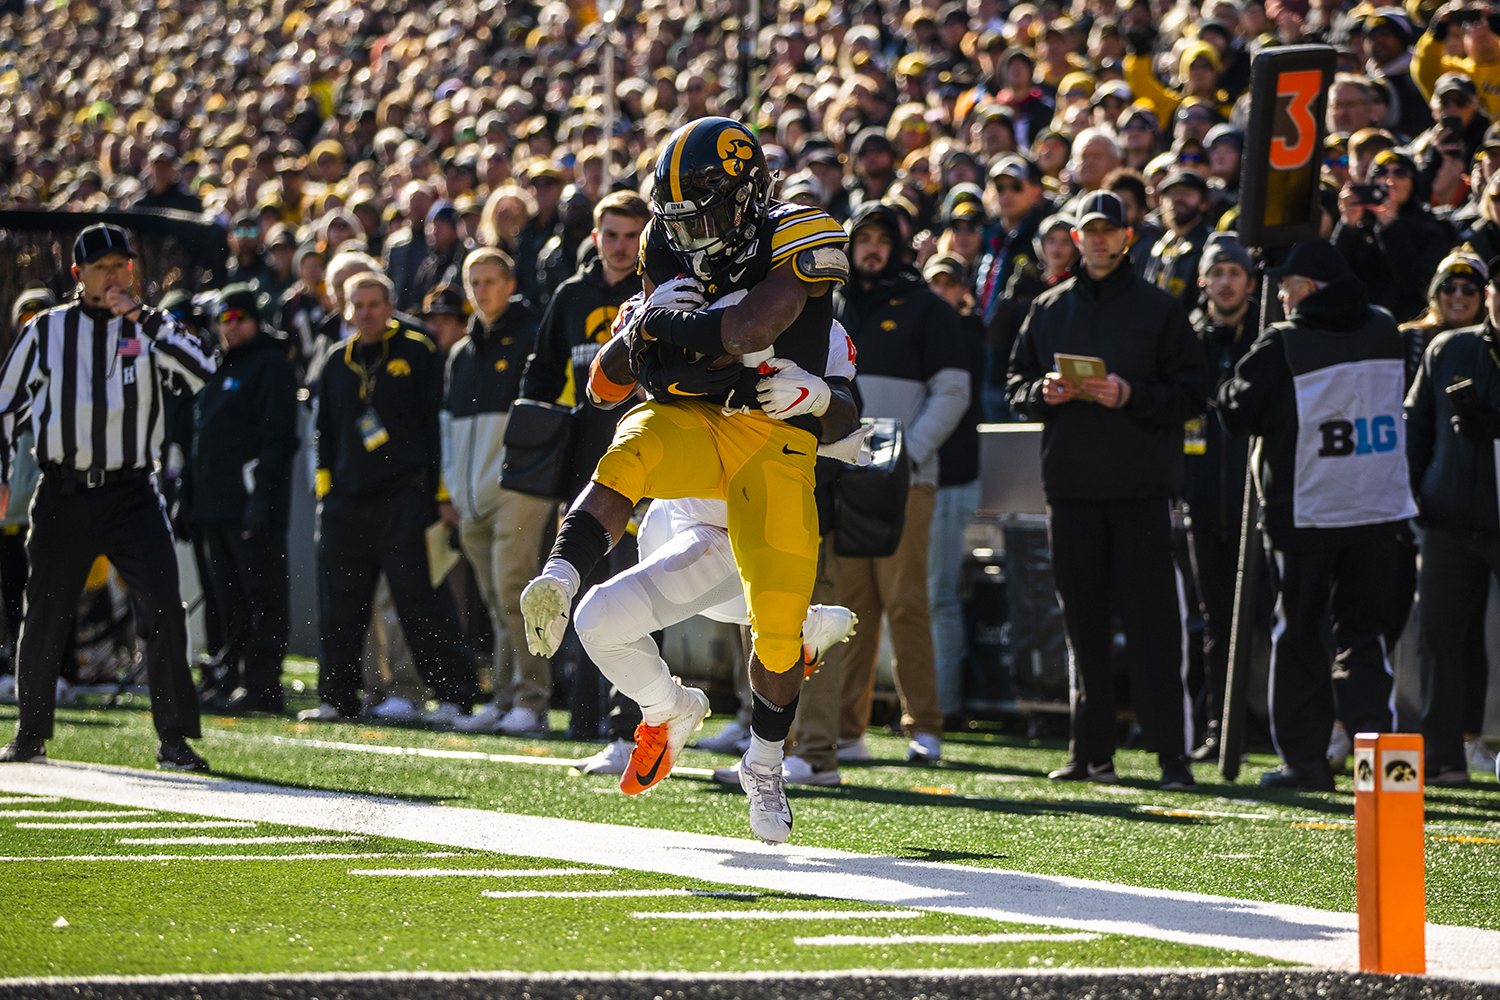 Iowa running back Tyler Goodson catches a pass during the game against Illinois on Saturday, November 23, 2019. The Hawkeyes defeated the Fighting Illini 19-10. Goodson rushed a total of 38 yards.